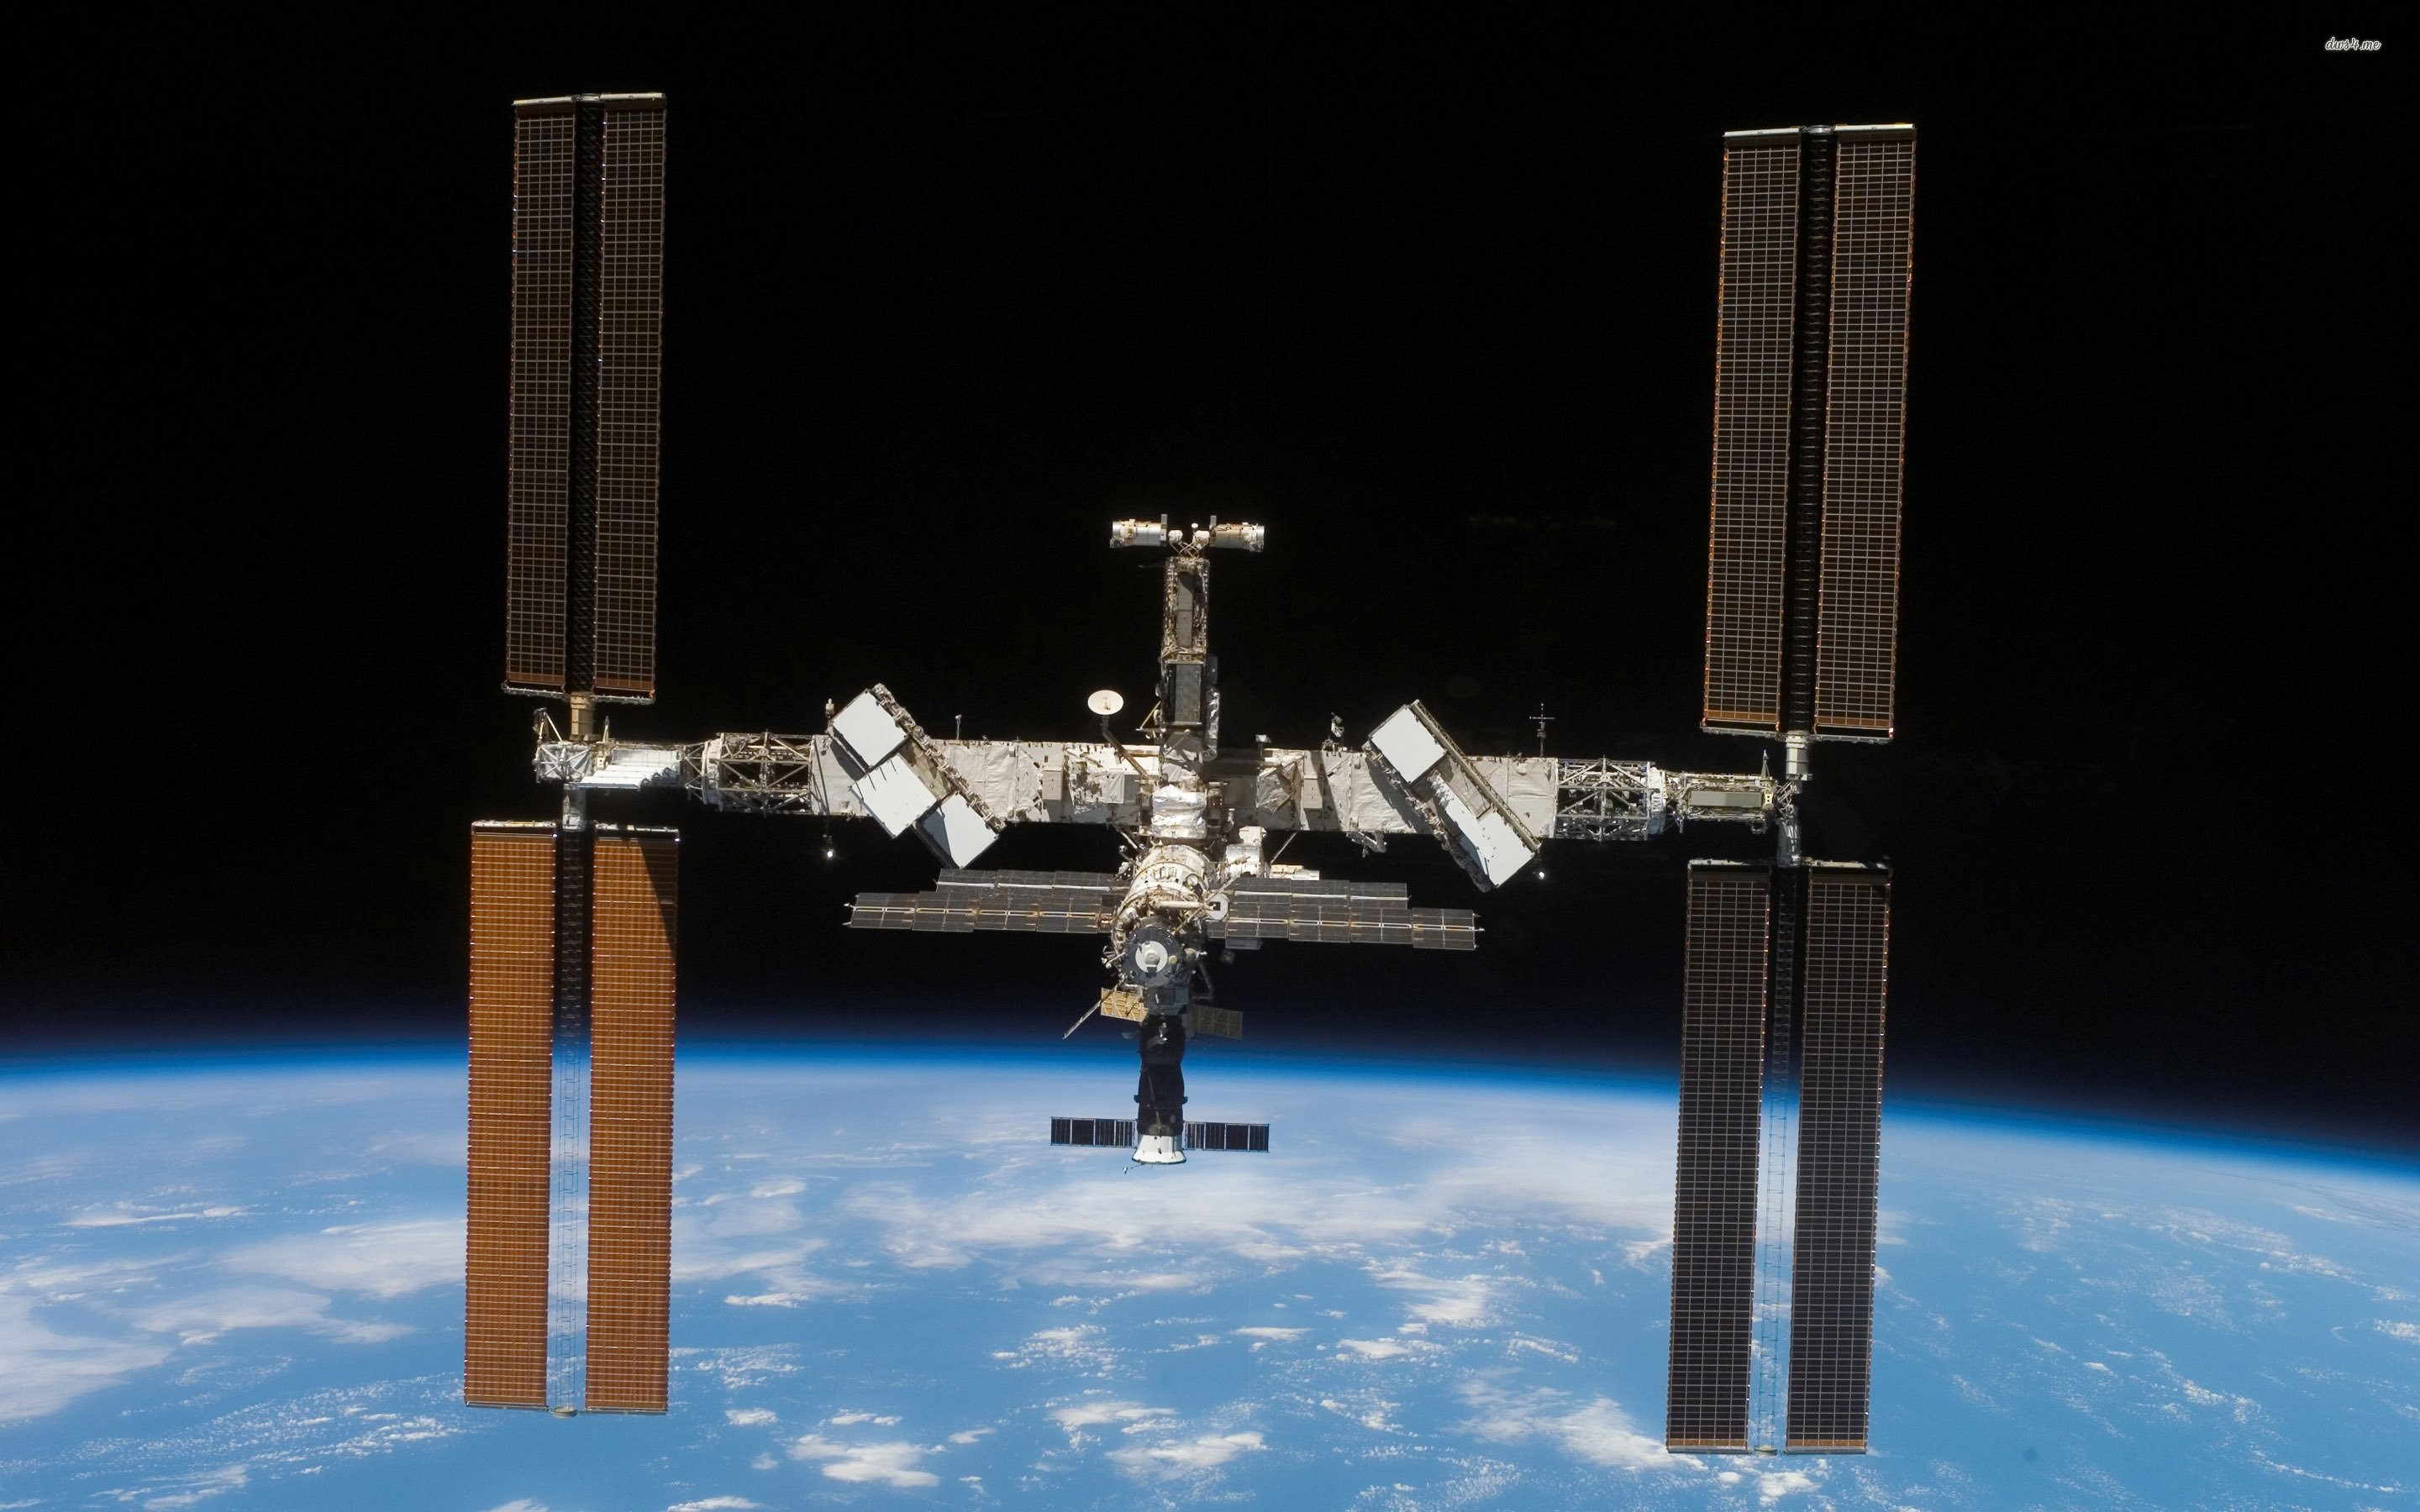 International space station wallpaper 65 images - Space station wallpaper ...